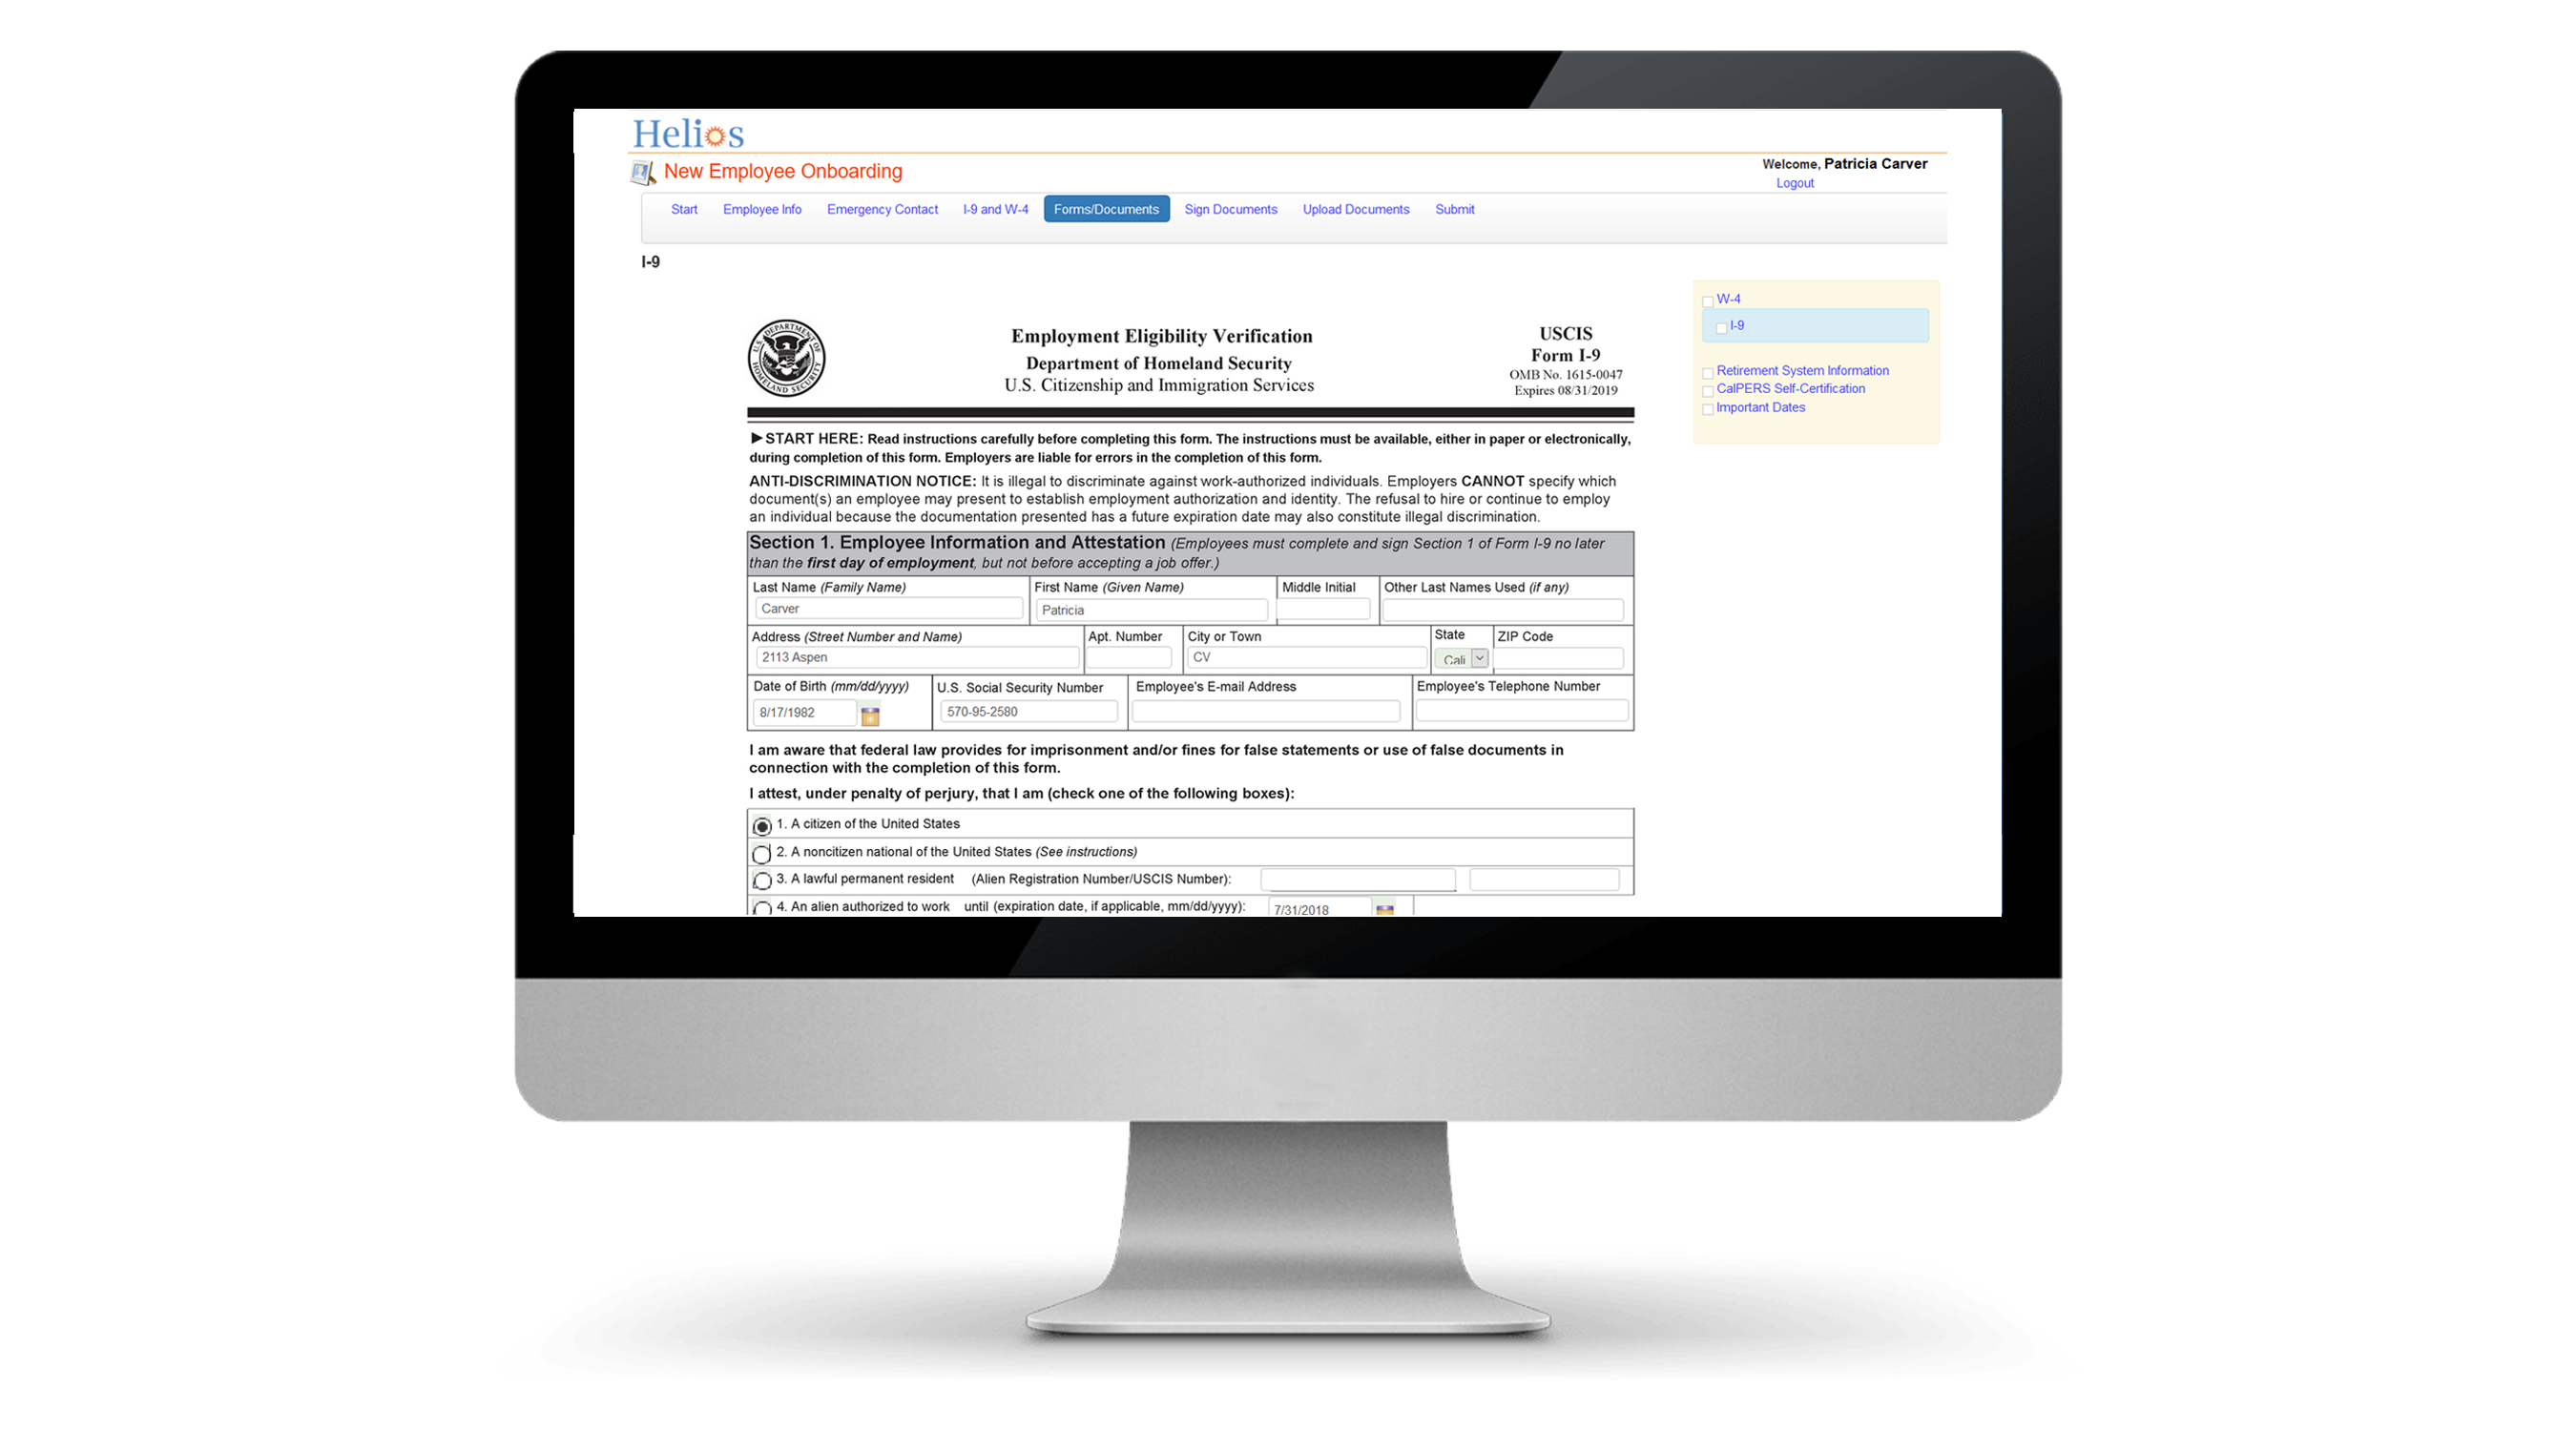 Helios   Onboarding for New Hire Paperwork